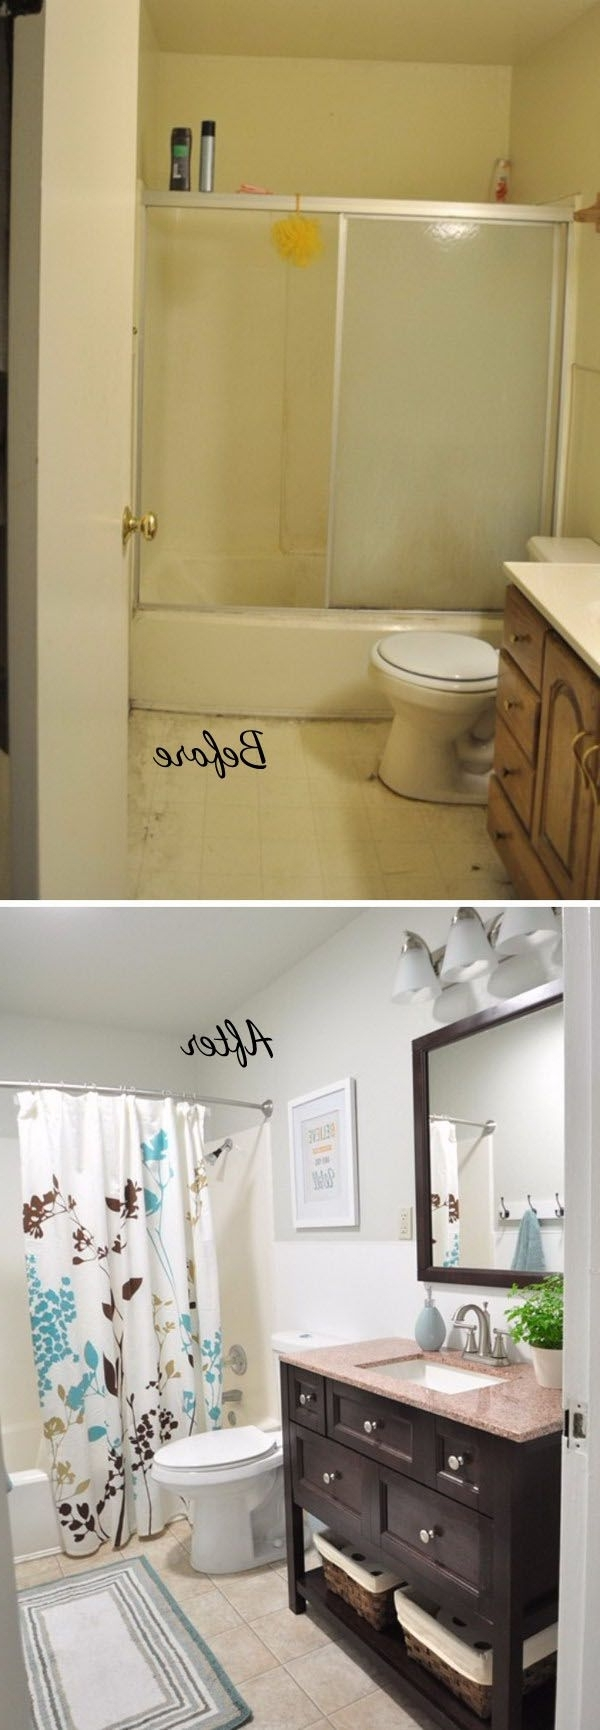 The Immensely Cool Diy Bathroom Remodel Ways You Cannot Find 40+ Mobile Home Bathroom Renovation Ideas